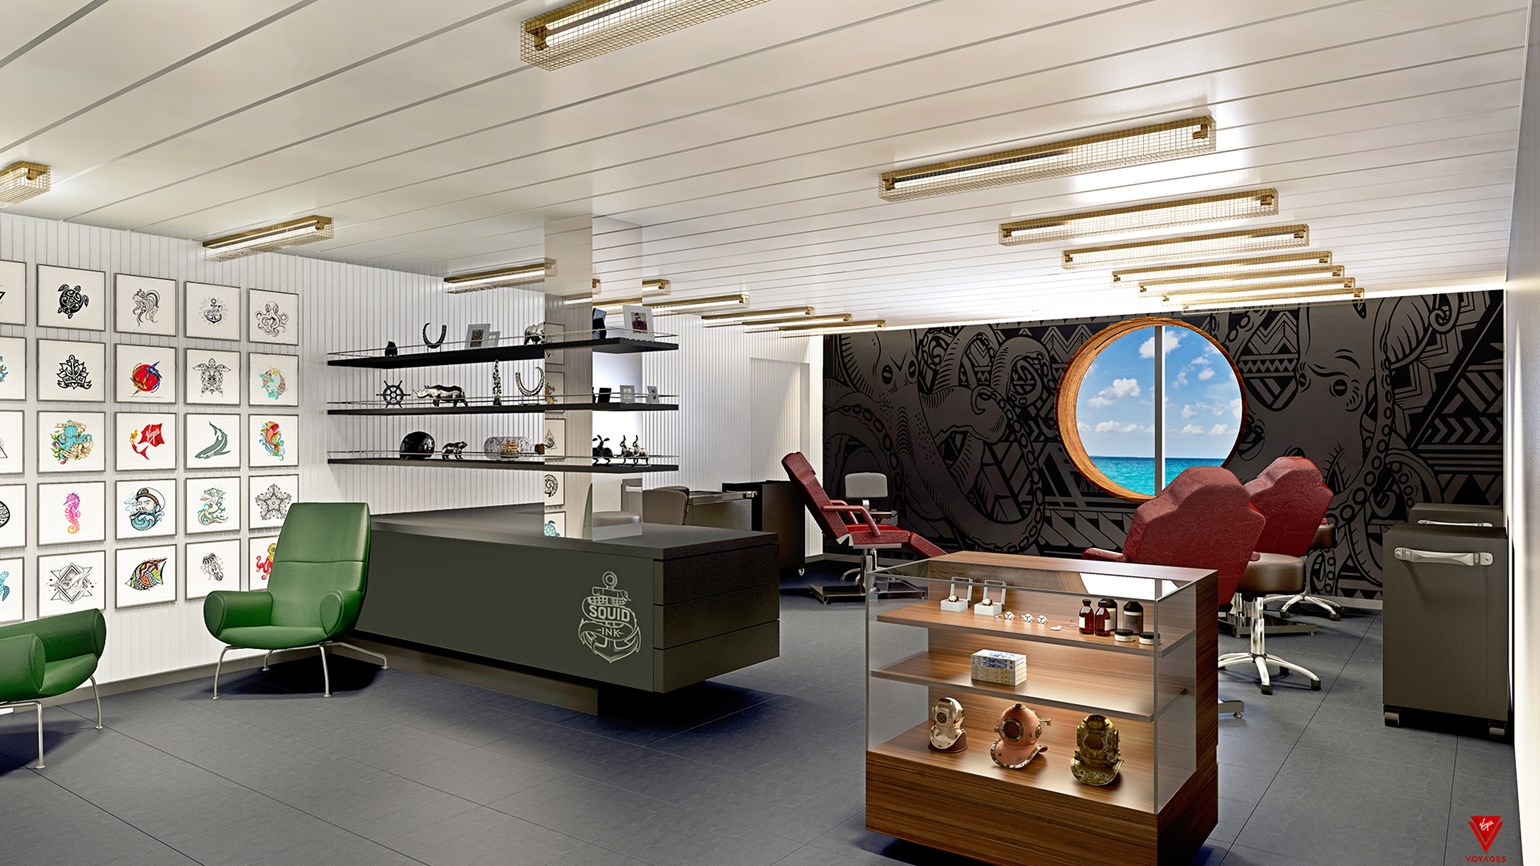 Inked at sea: Virgin Voyages ship will have tattoo parlor